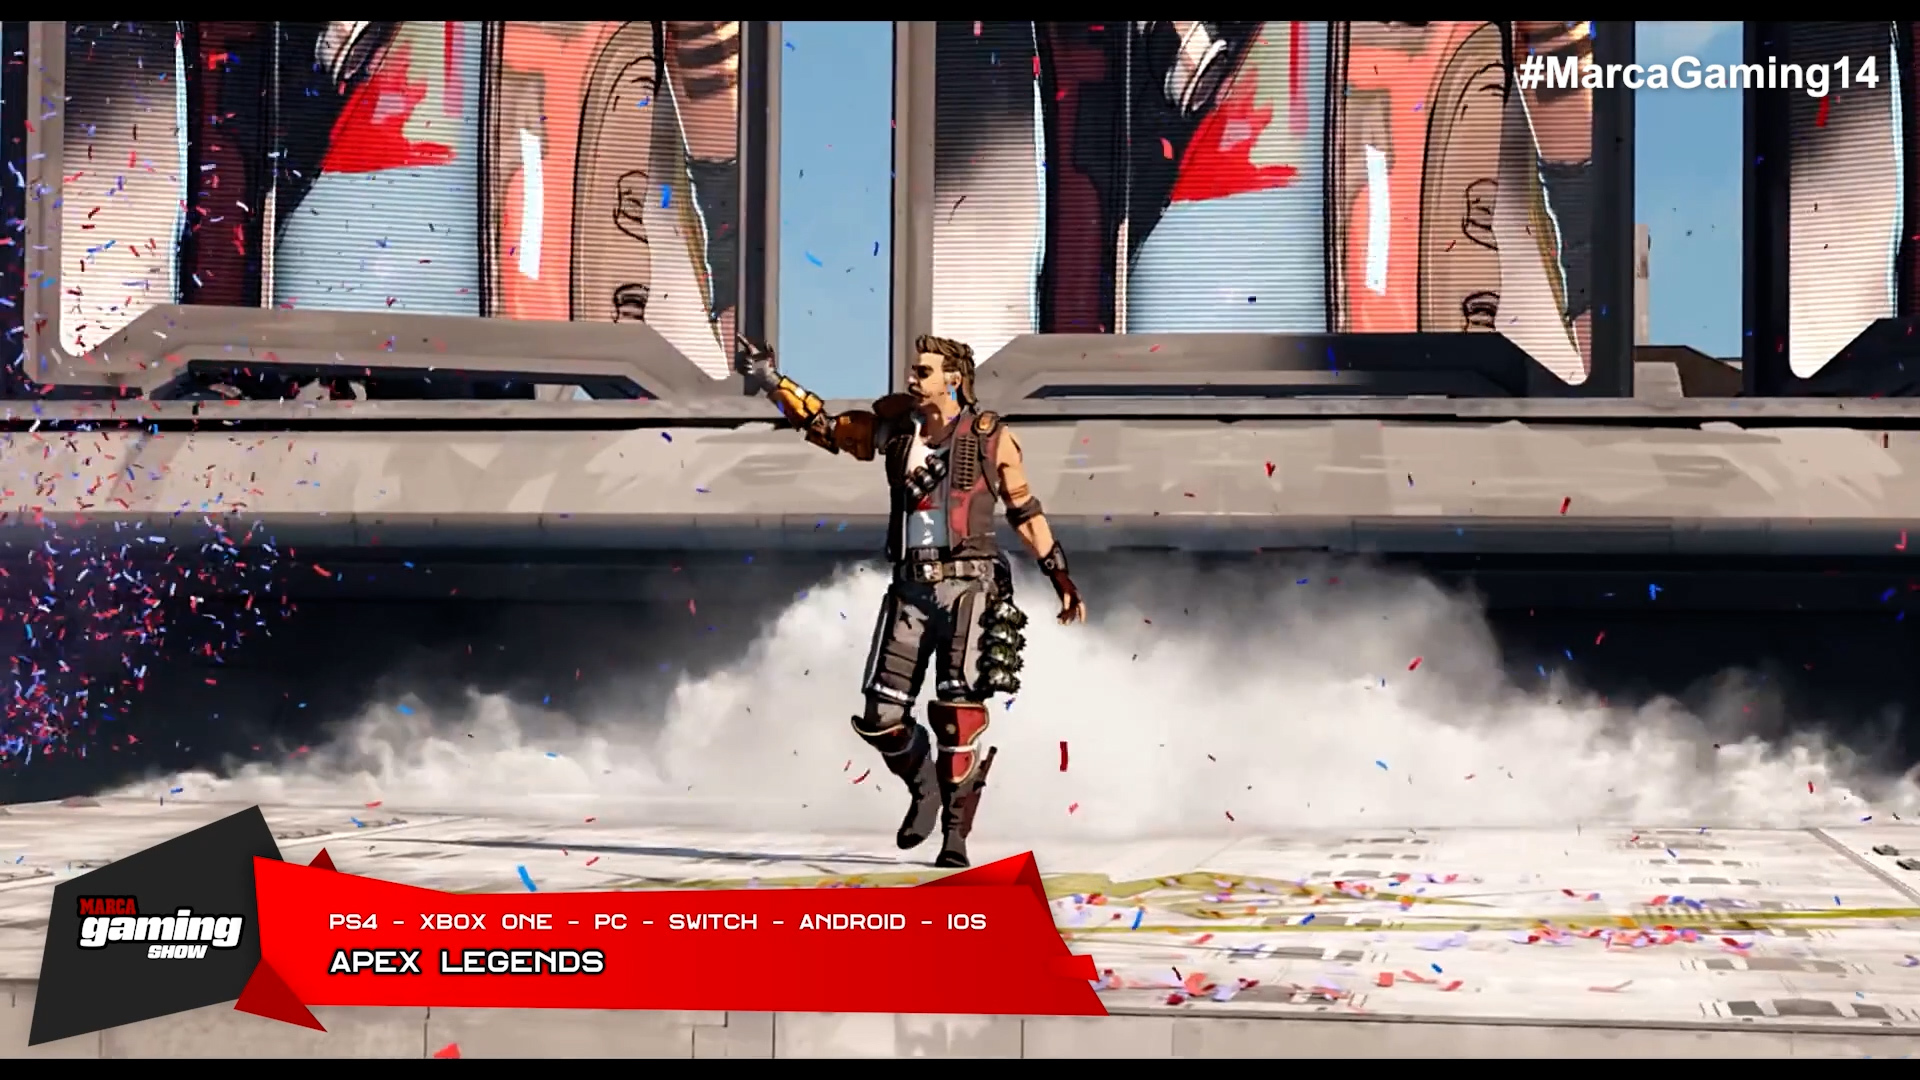 APEX Legends (PC - PS4 - XBOX ONE - SWITCH - IOS - ANDROID)